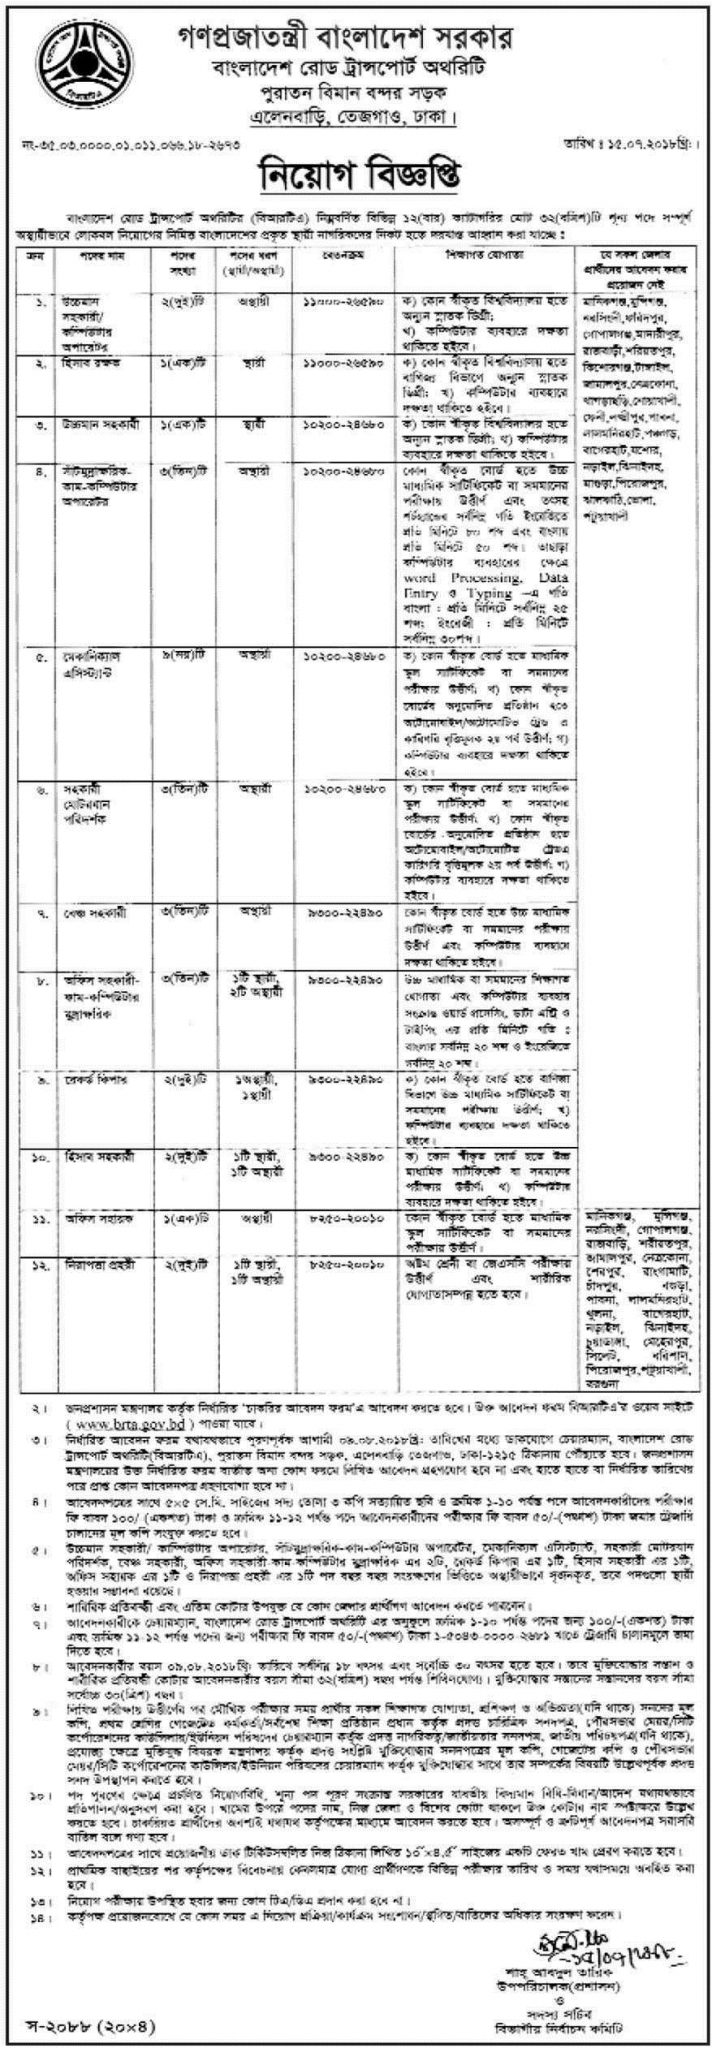 BANGLADESH ROAD TRANSPORT AUTHORITY BRTA JOB CIRCULAR 2018